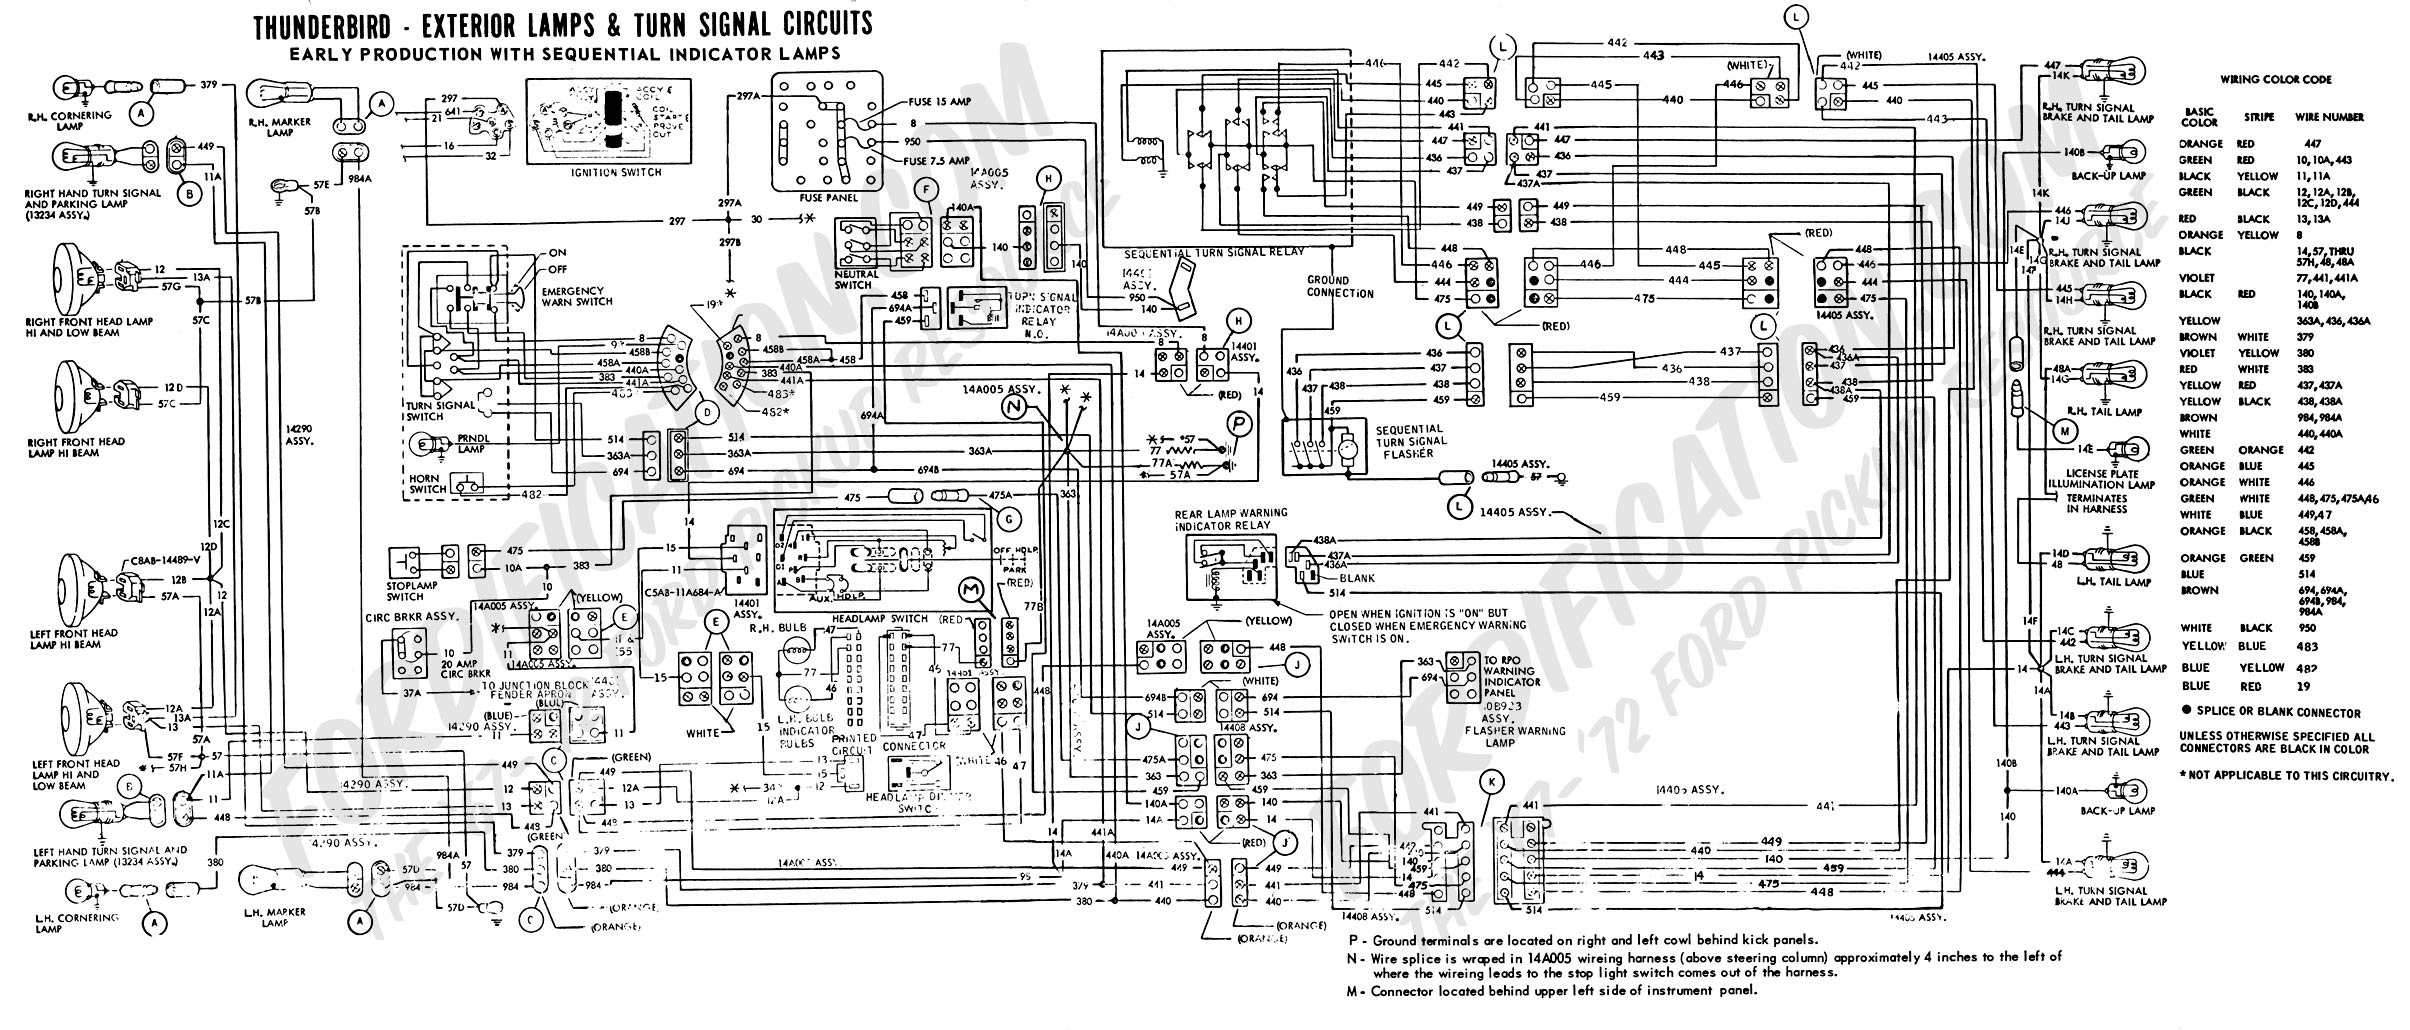 THUNDERBIRD - EXTERIOR LAMPS & TURN SIGNAL CIRCUITS EARLY PRODUCTION WITH  SEQUENTIAL INDICATOR LAMPS